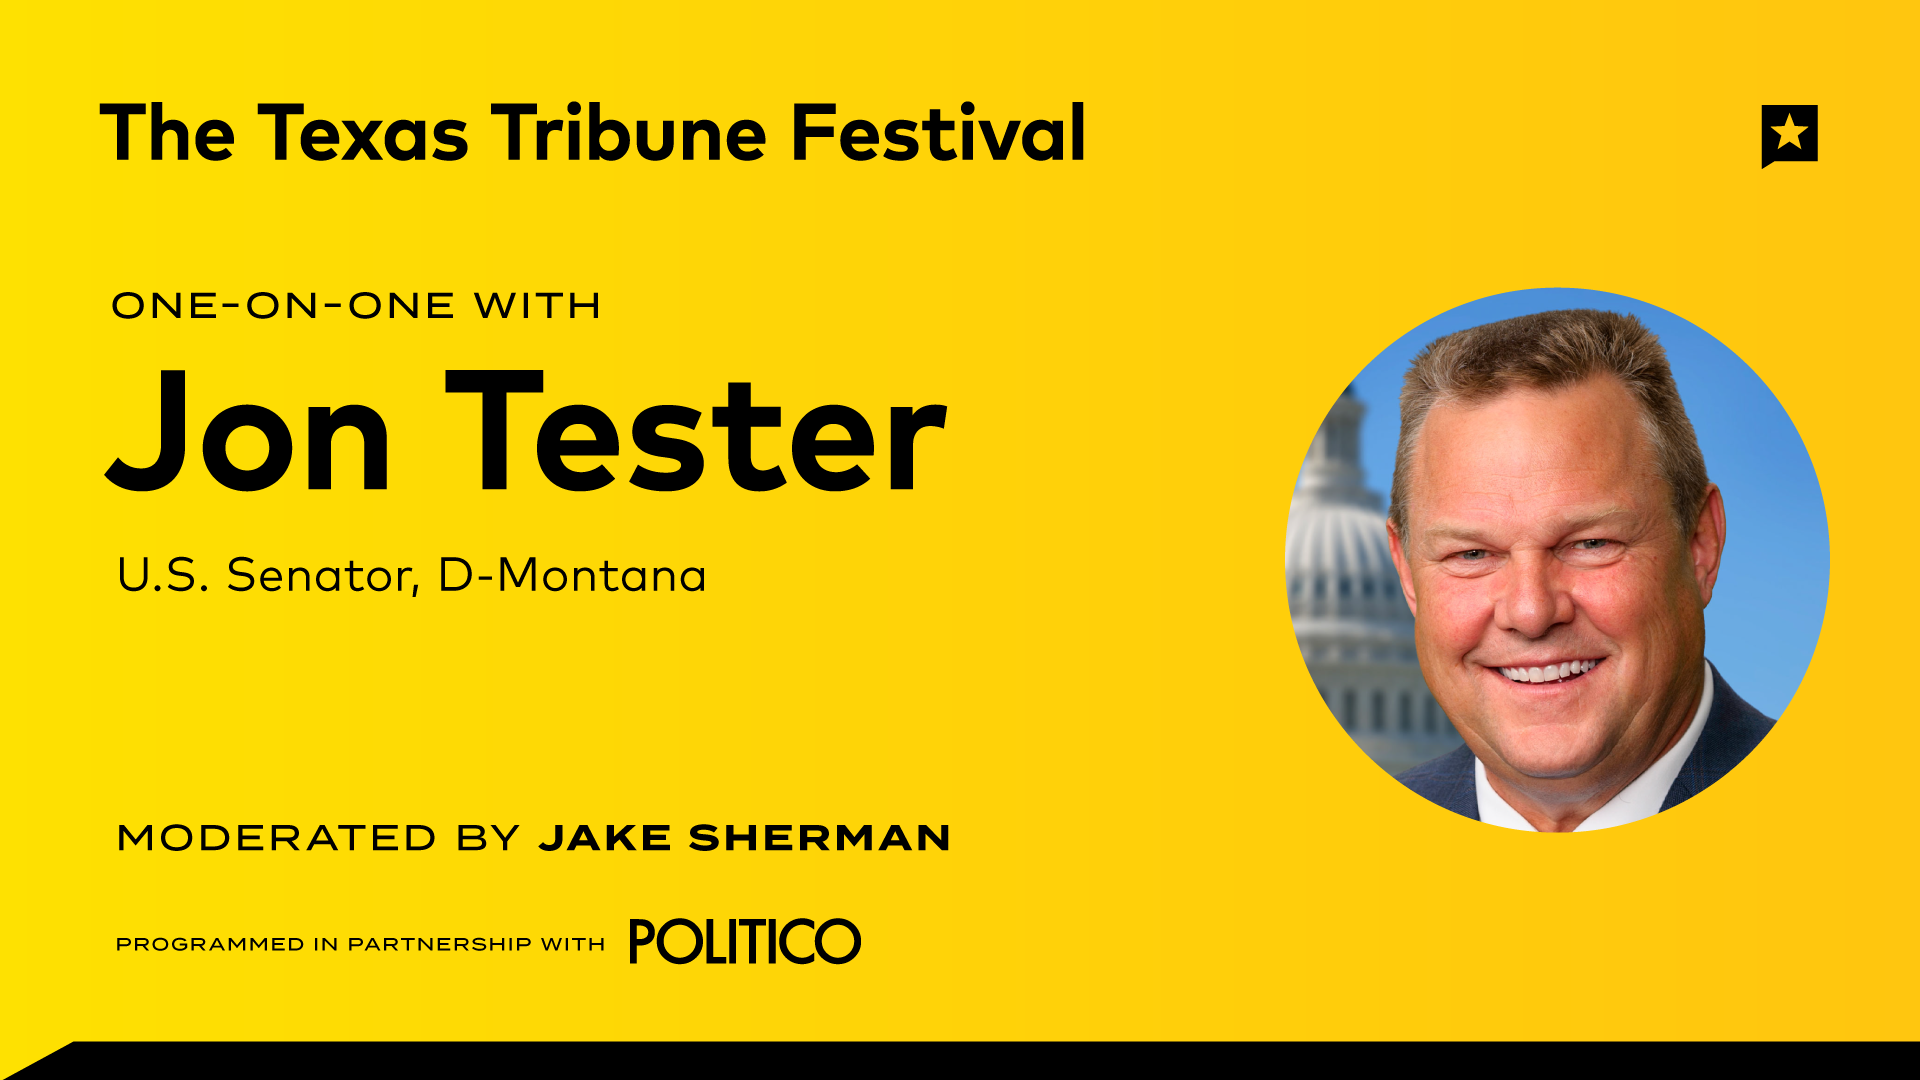 Politico-LIVE at The Texas Tribune Festival: One-on-One with Jon Tester